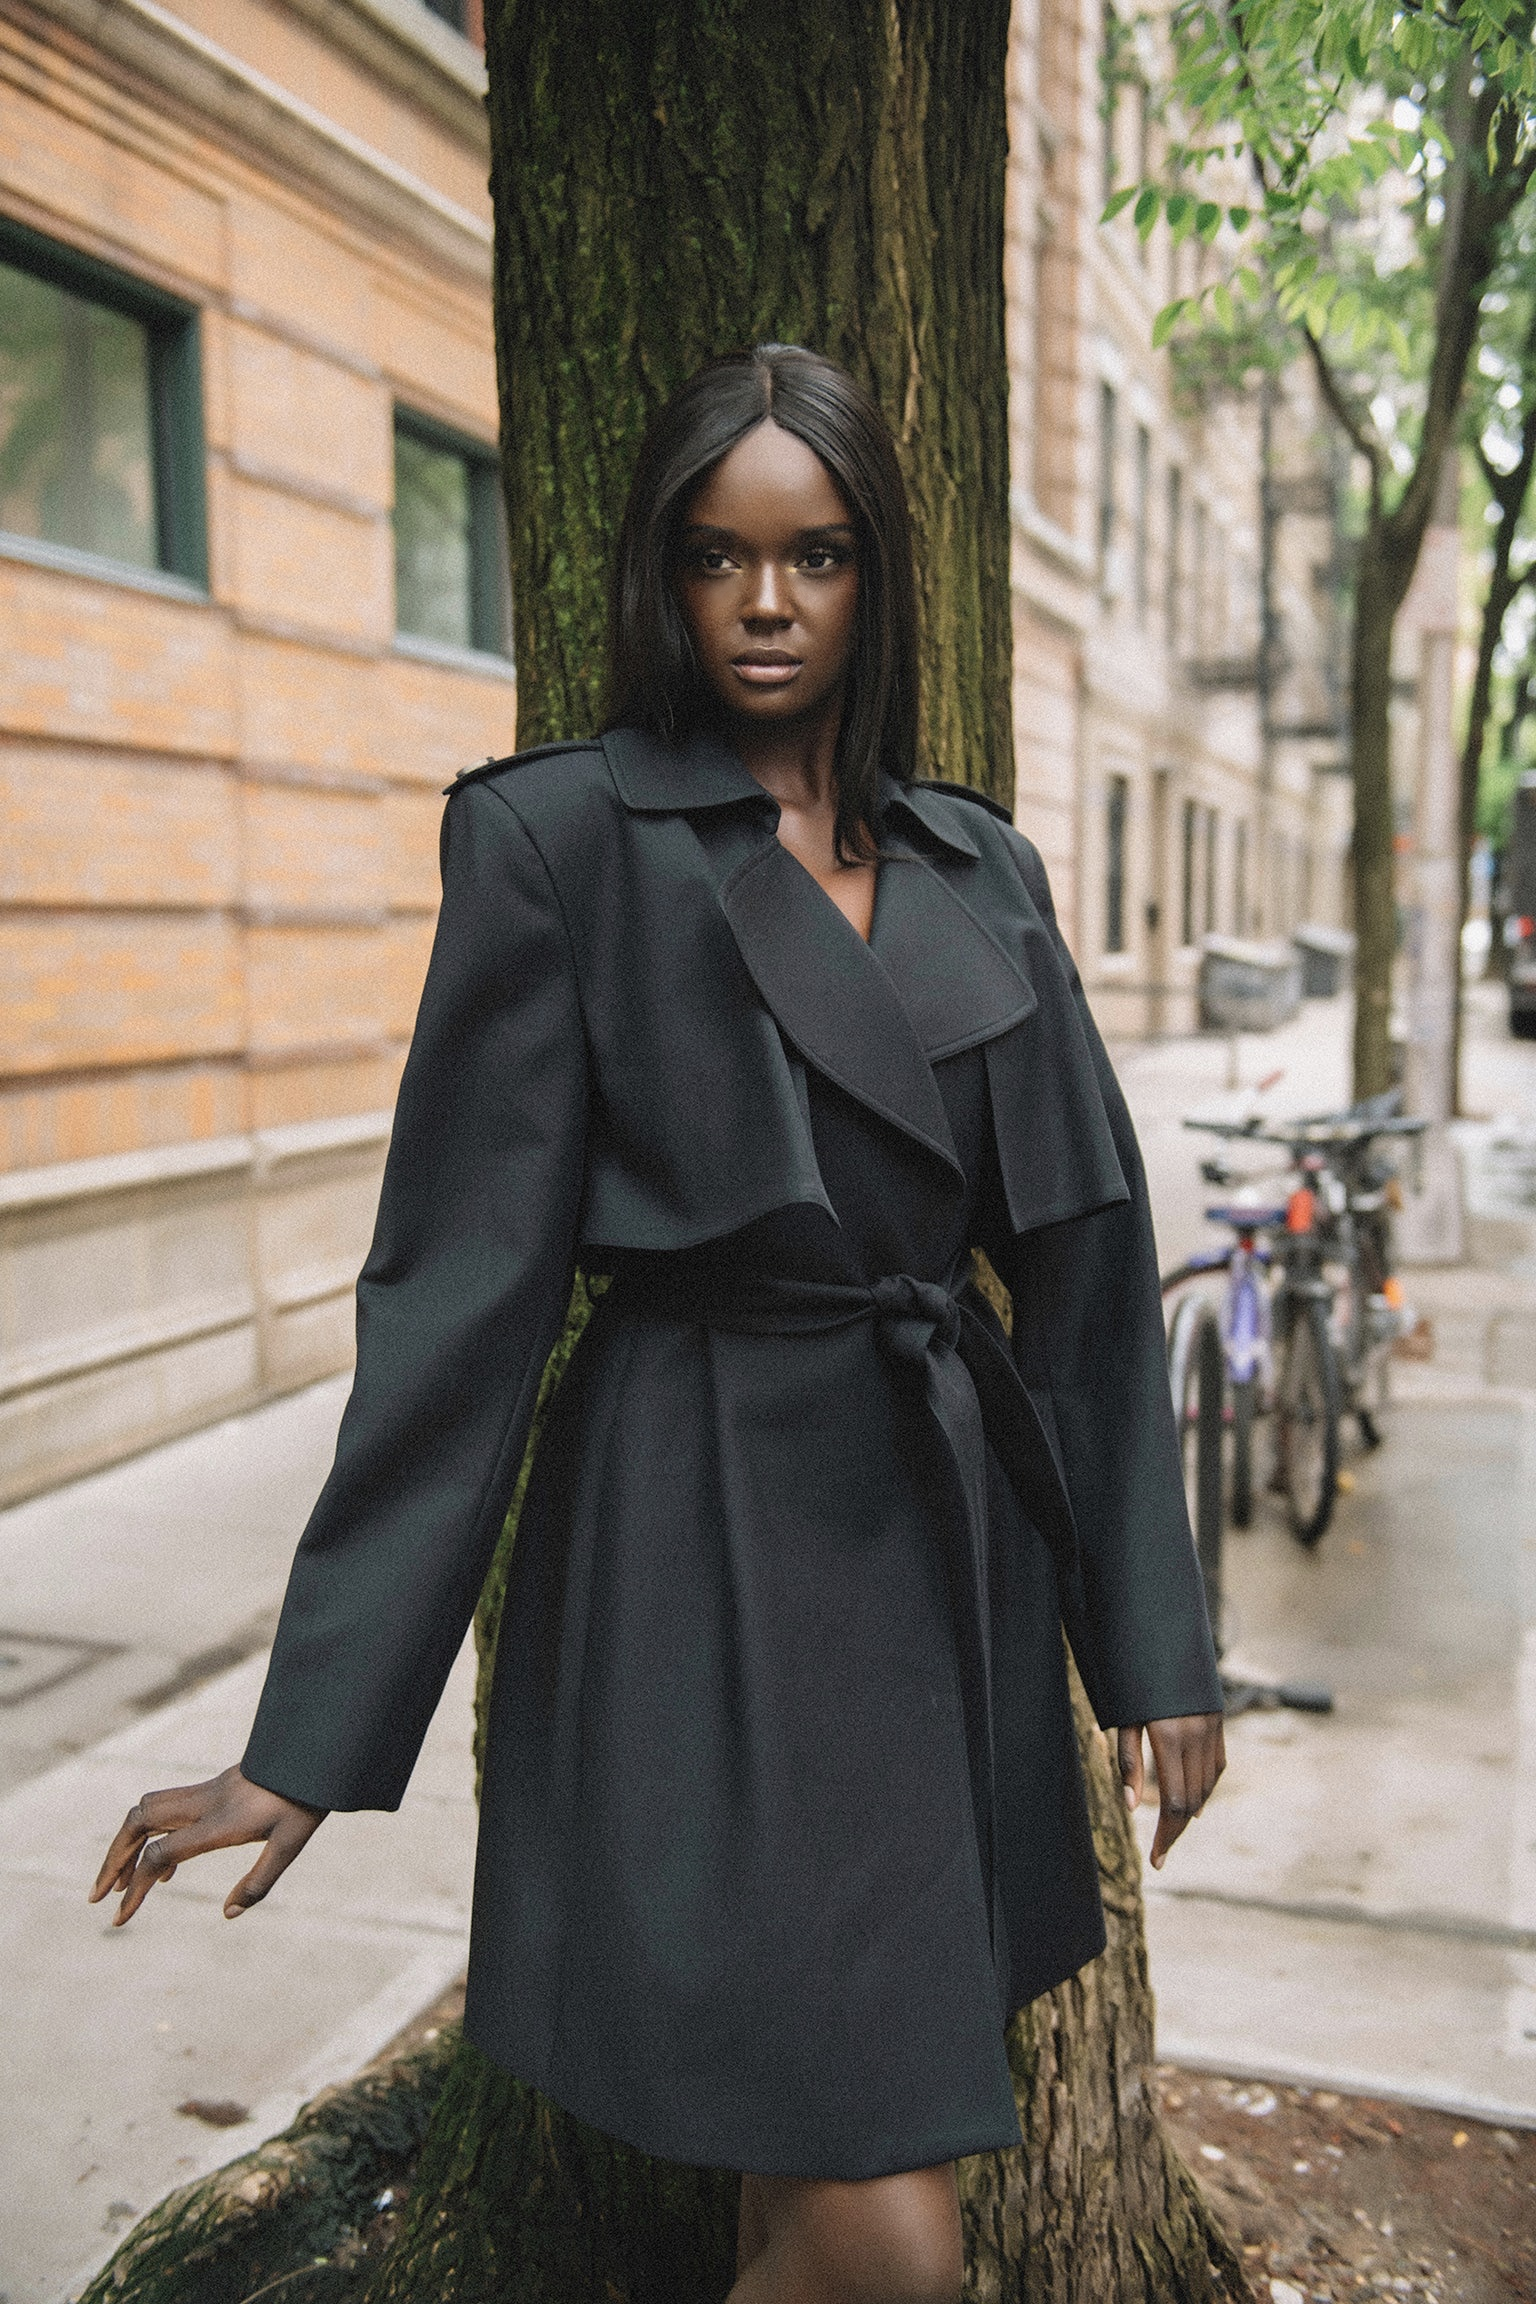 Model:  @duckieofficial   Photographer:  @griff  Fashion Editor:  @nickycbell  Makeup:  @makeupbyslater  Hair:  @ivainsane   Published:  https://cfda.com/news/words-with-fashion-friends-duckie-thot